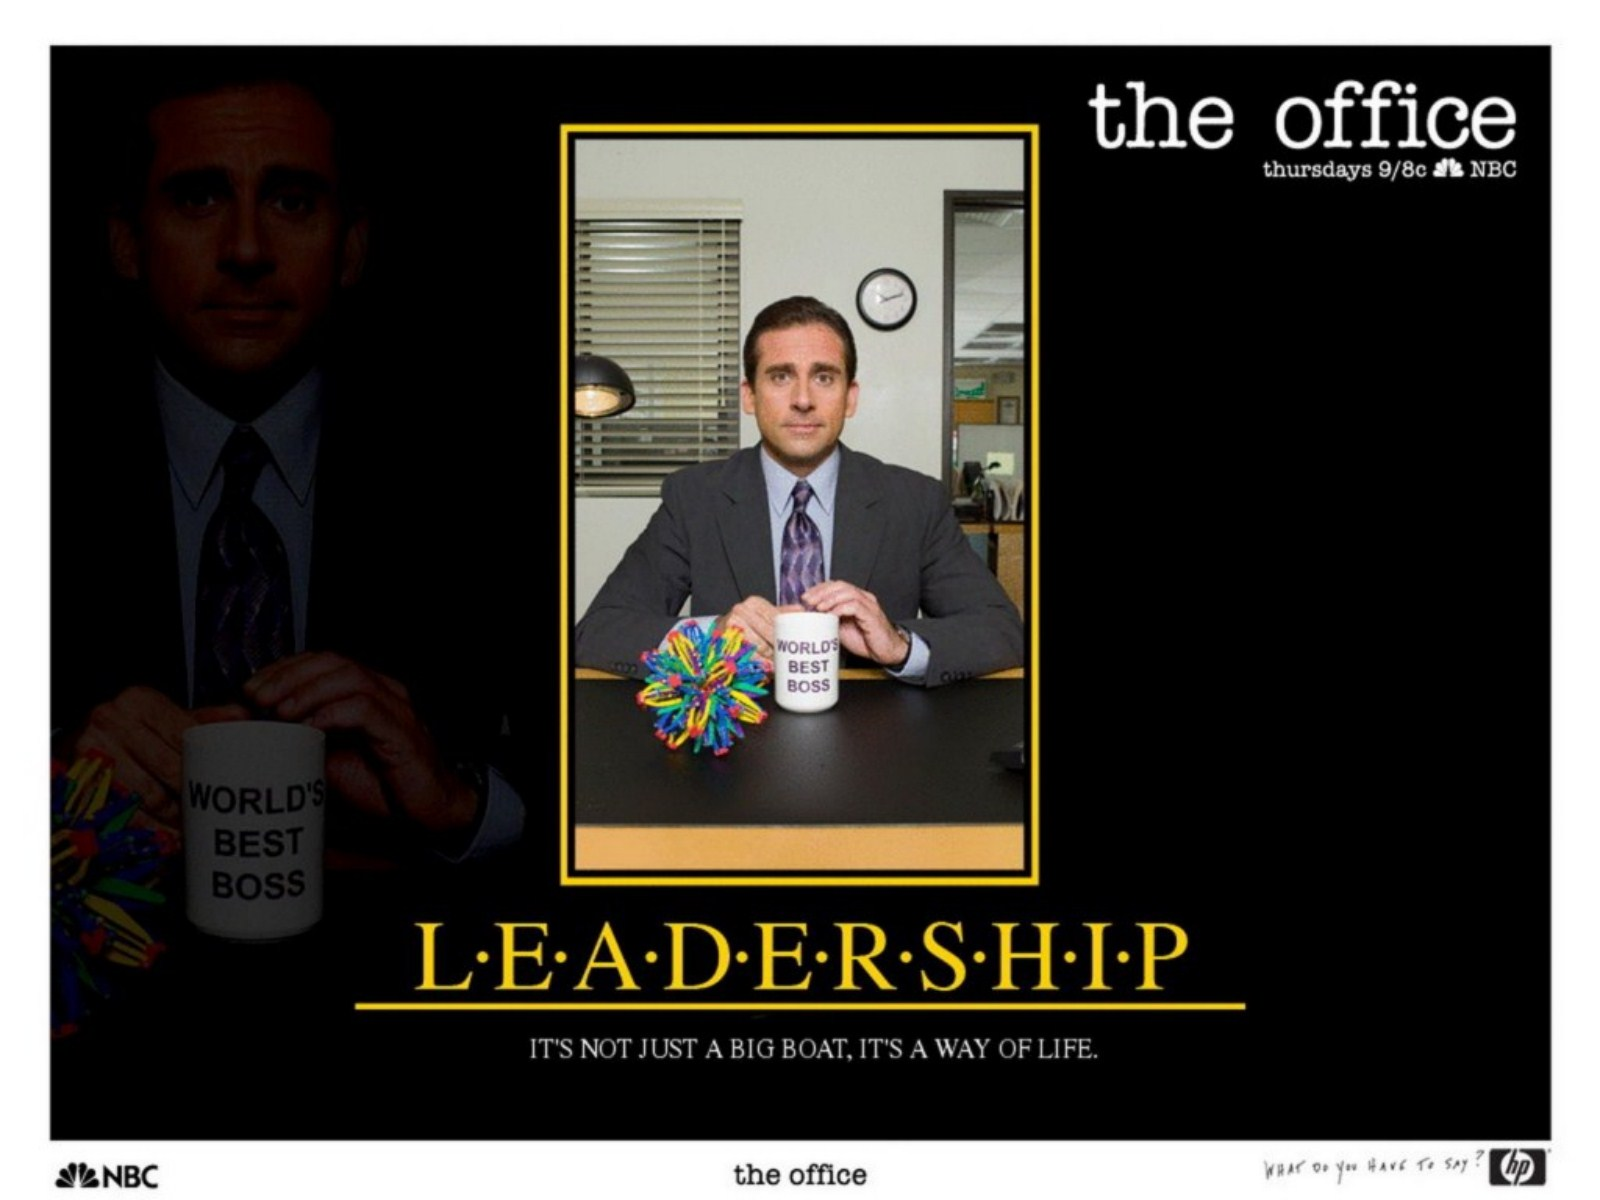 Free Download The Office Comedy Funny Television Series 1600x1200